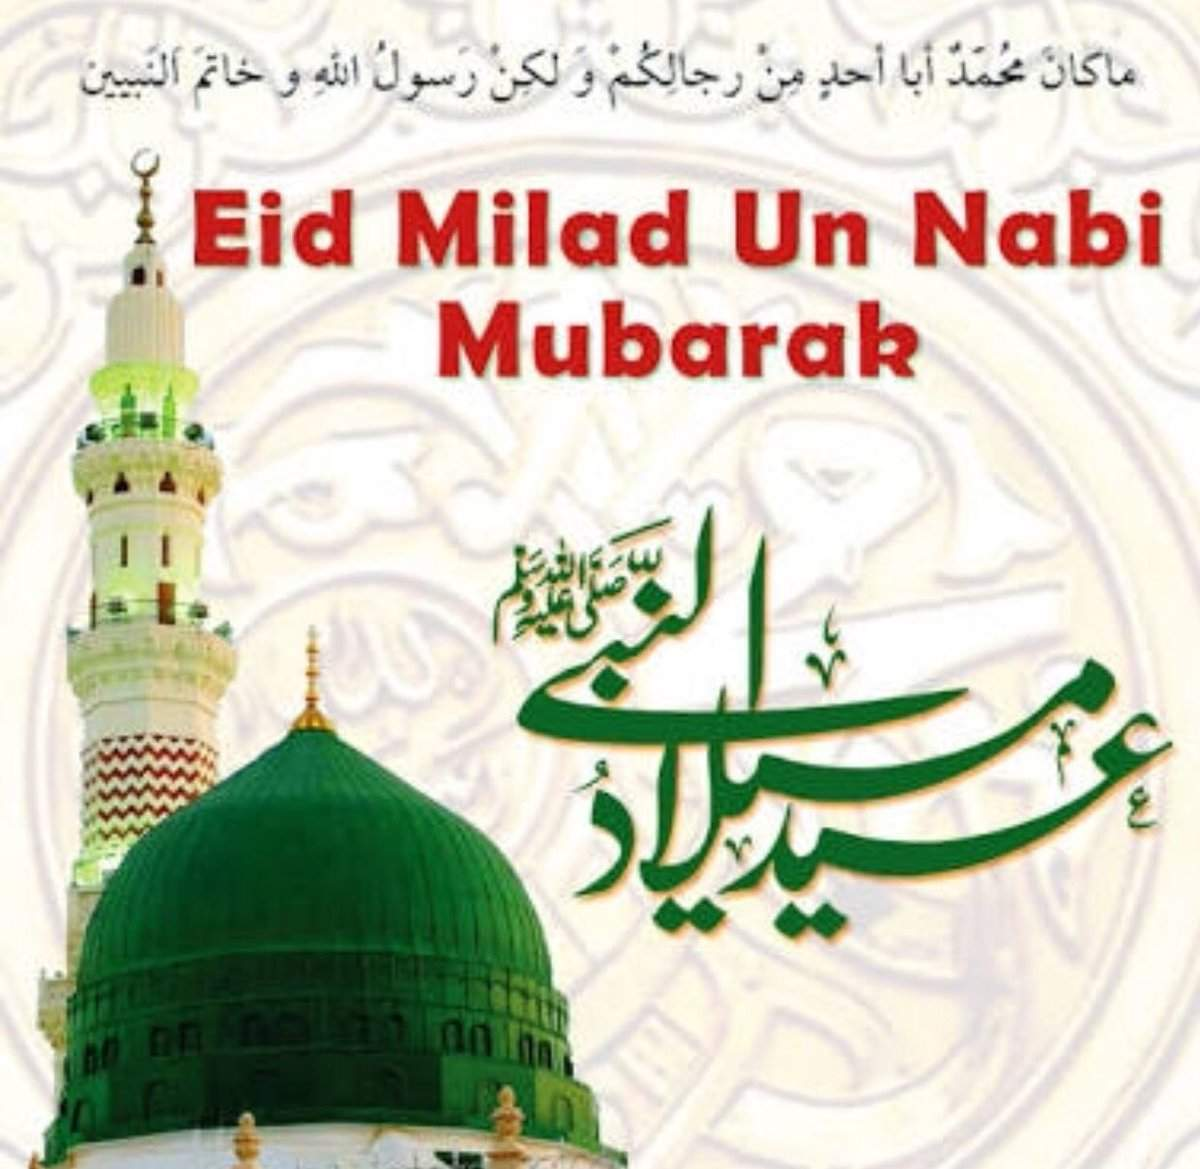 Eid-E-Milad-Un-Nabi Wishes and Messages, Eid Milad Un Nabi Images and Quotes